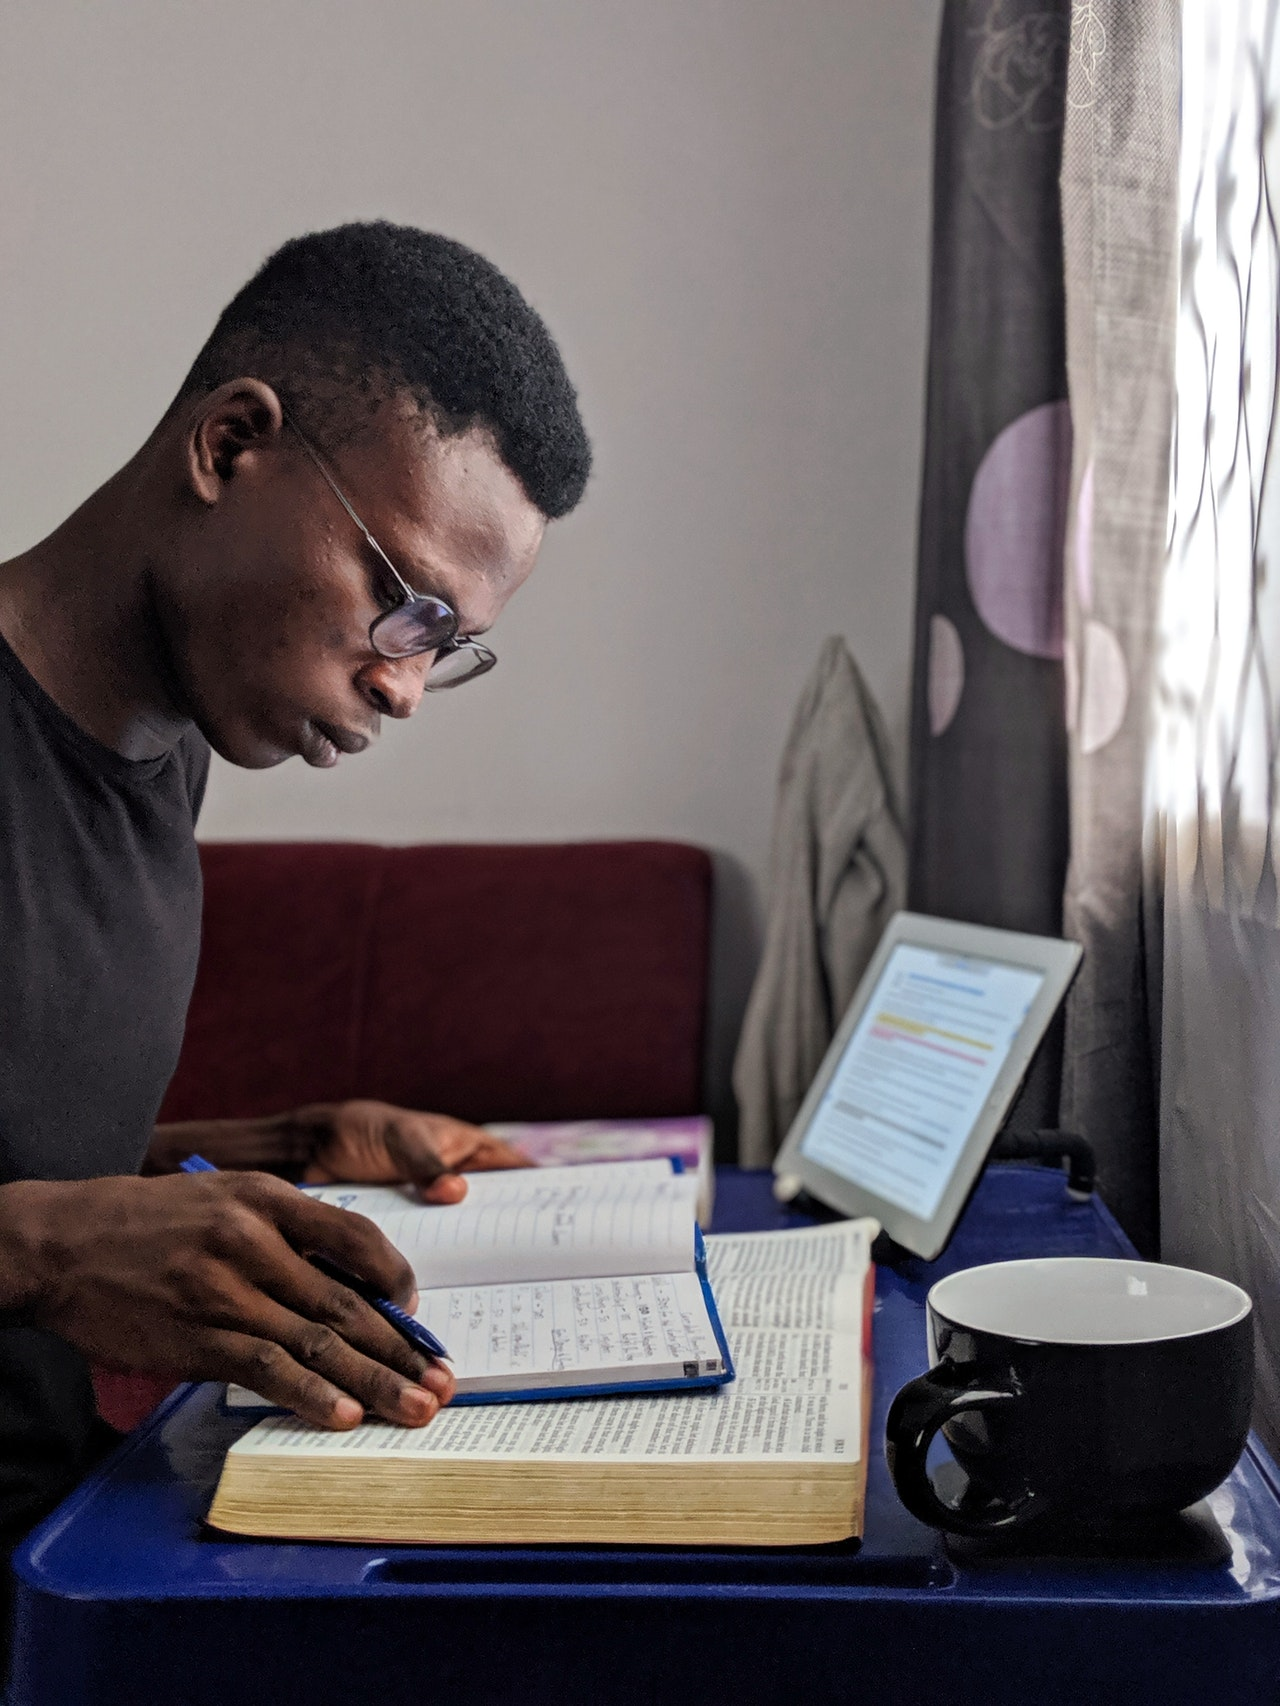 man studying in front of computer